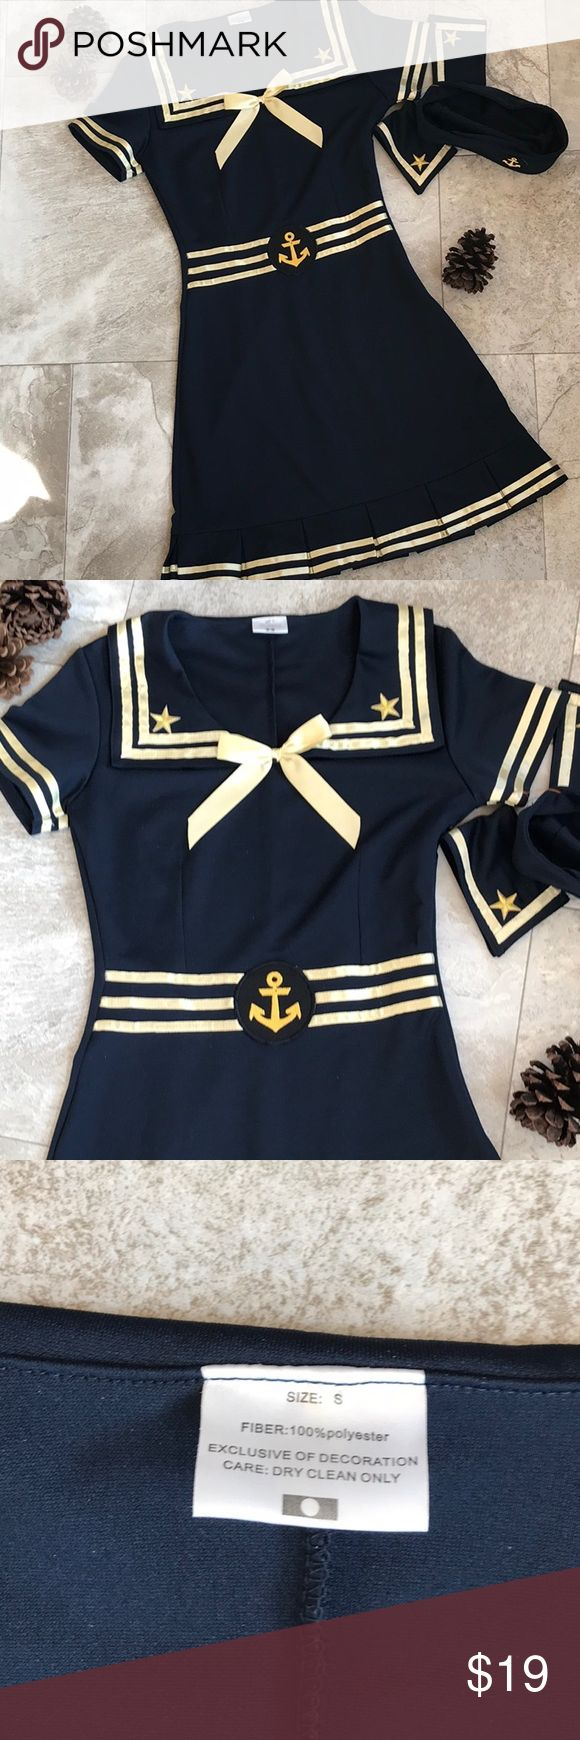 🍂Sailor Halloween Outfit -S🍂 Sailor outfit, size Small. Worn once (but does have small flaws) comes with hat and 2 wrist bands, no stains or holes, smoke free home! Other